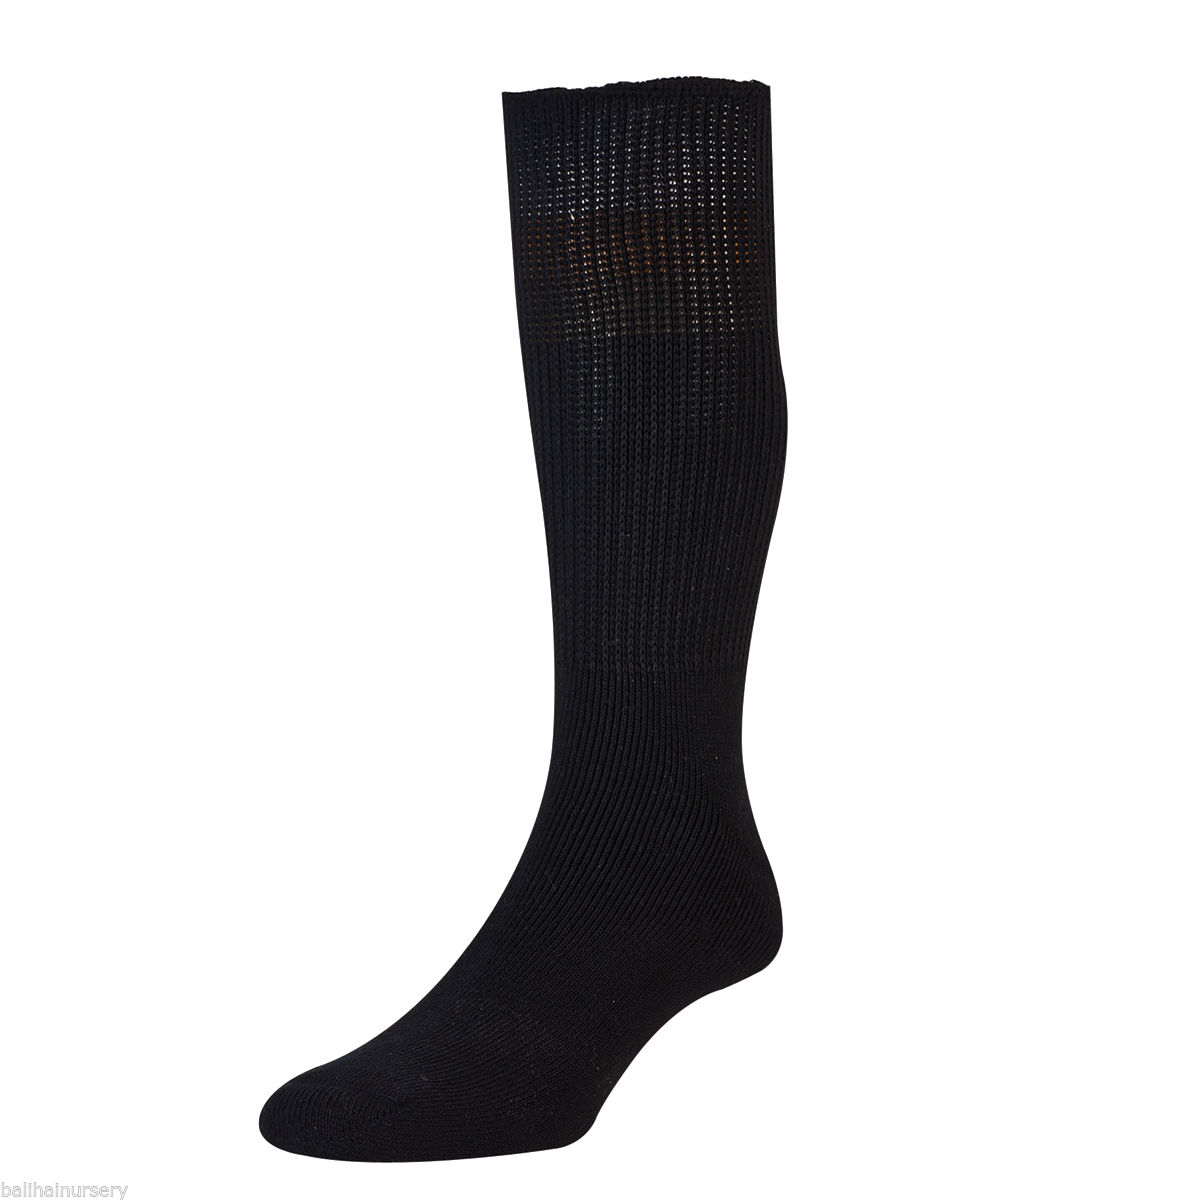 HJ Hall Diabetic Cotton Socks size 11-13 Black HJ1351